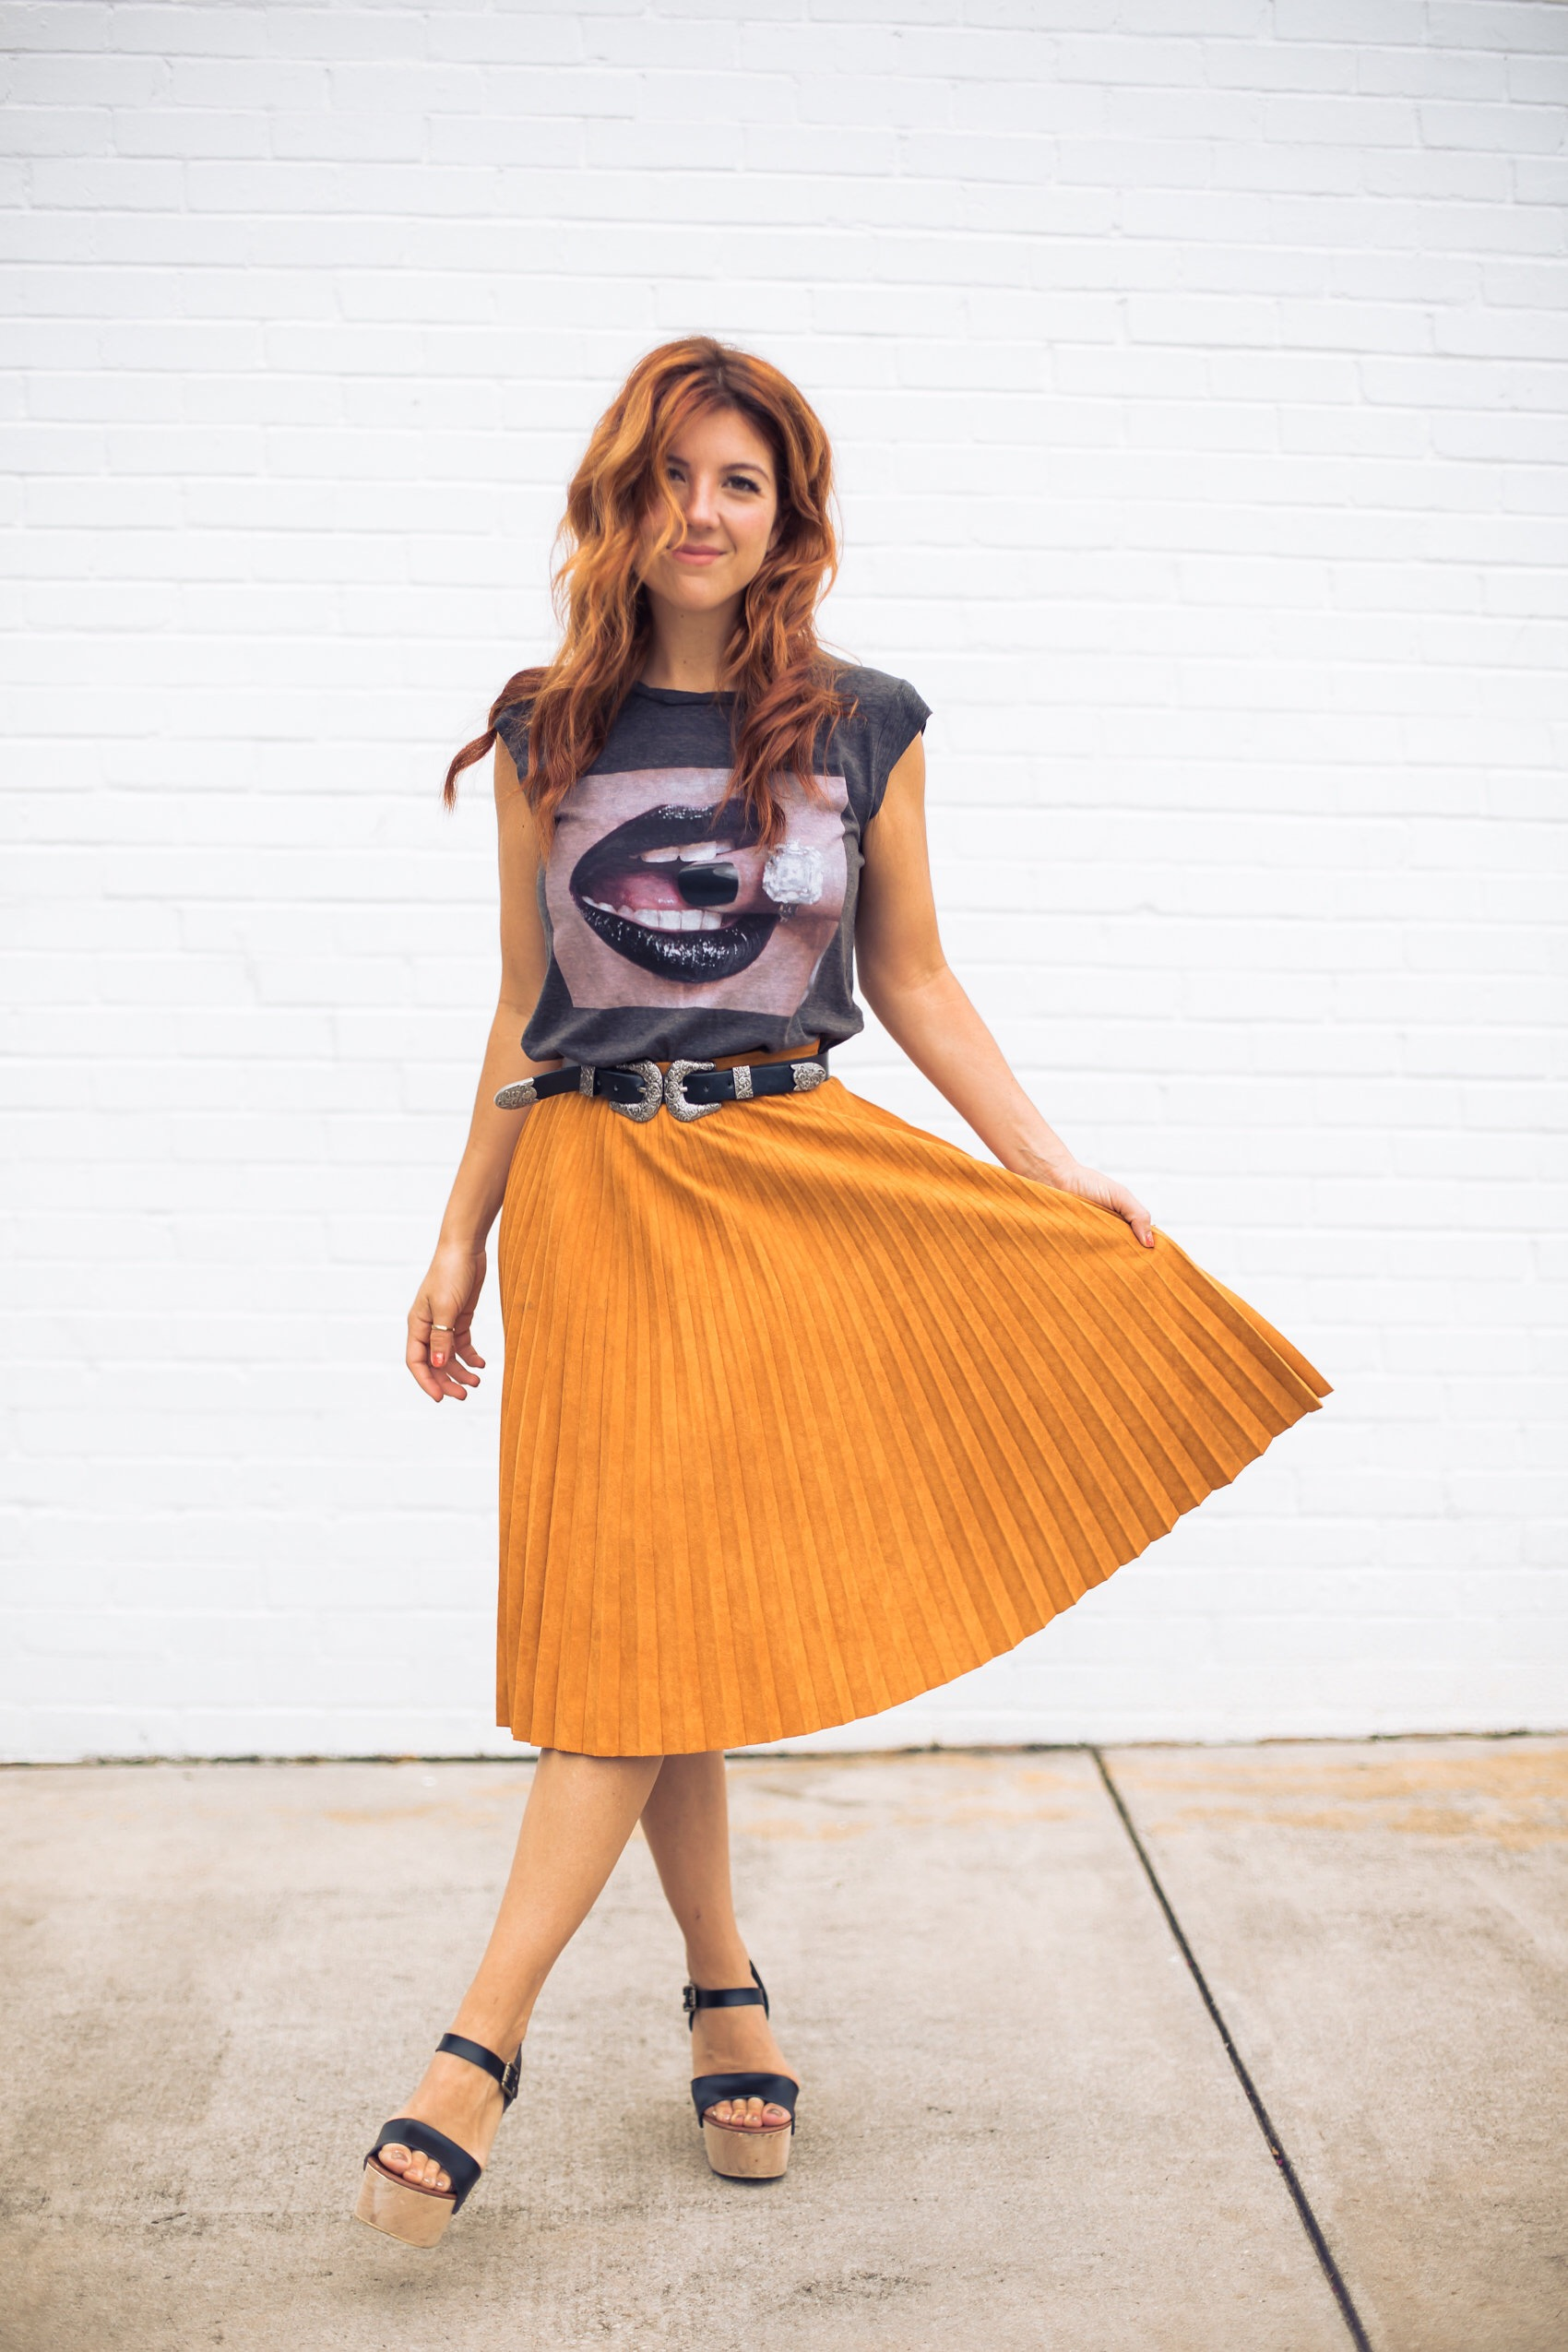 fashionveggie in faux suede vegan suede skirt and graphic tee, double buckle belt